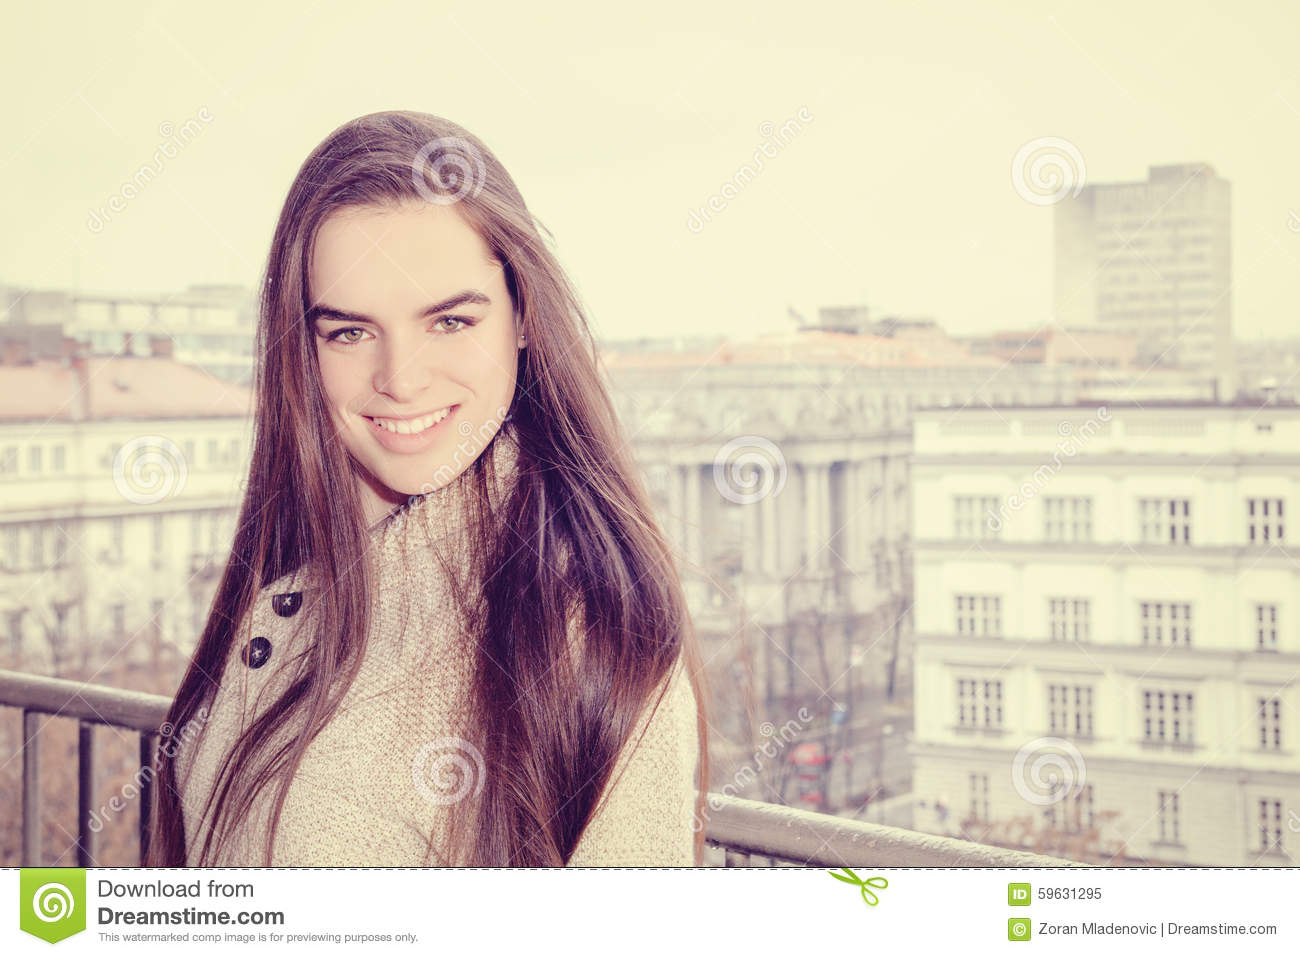 Portrait of pretty woman smiling in city background